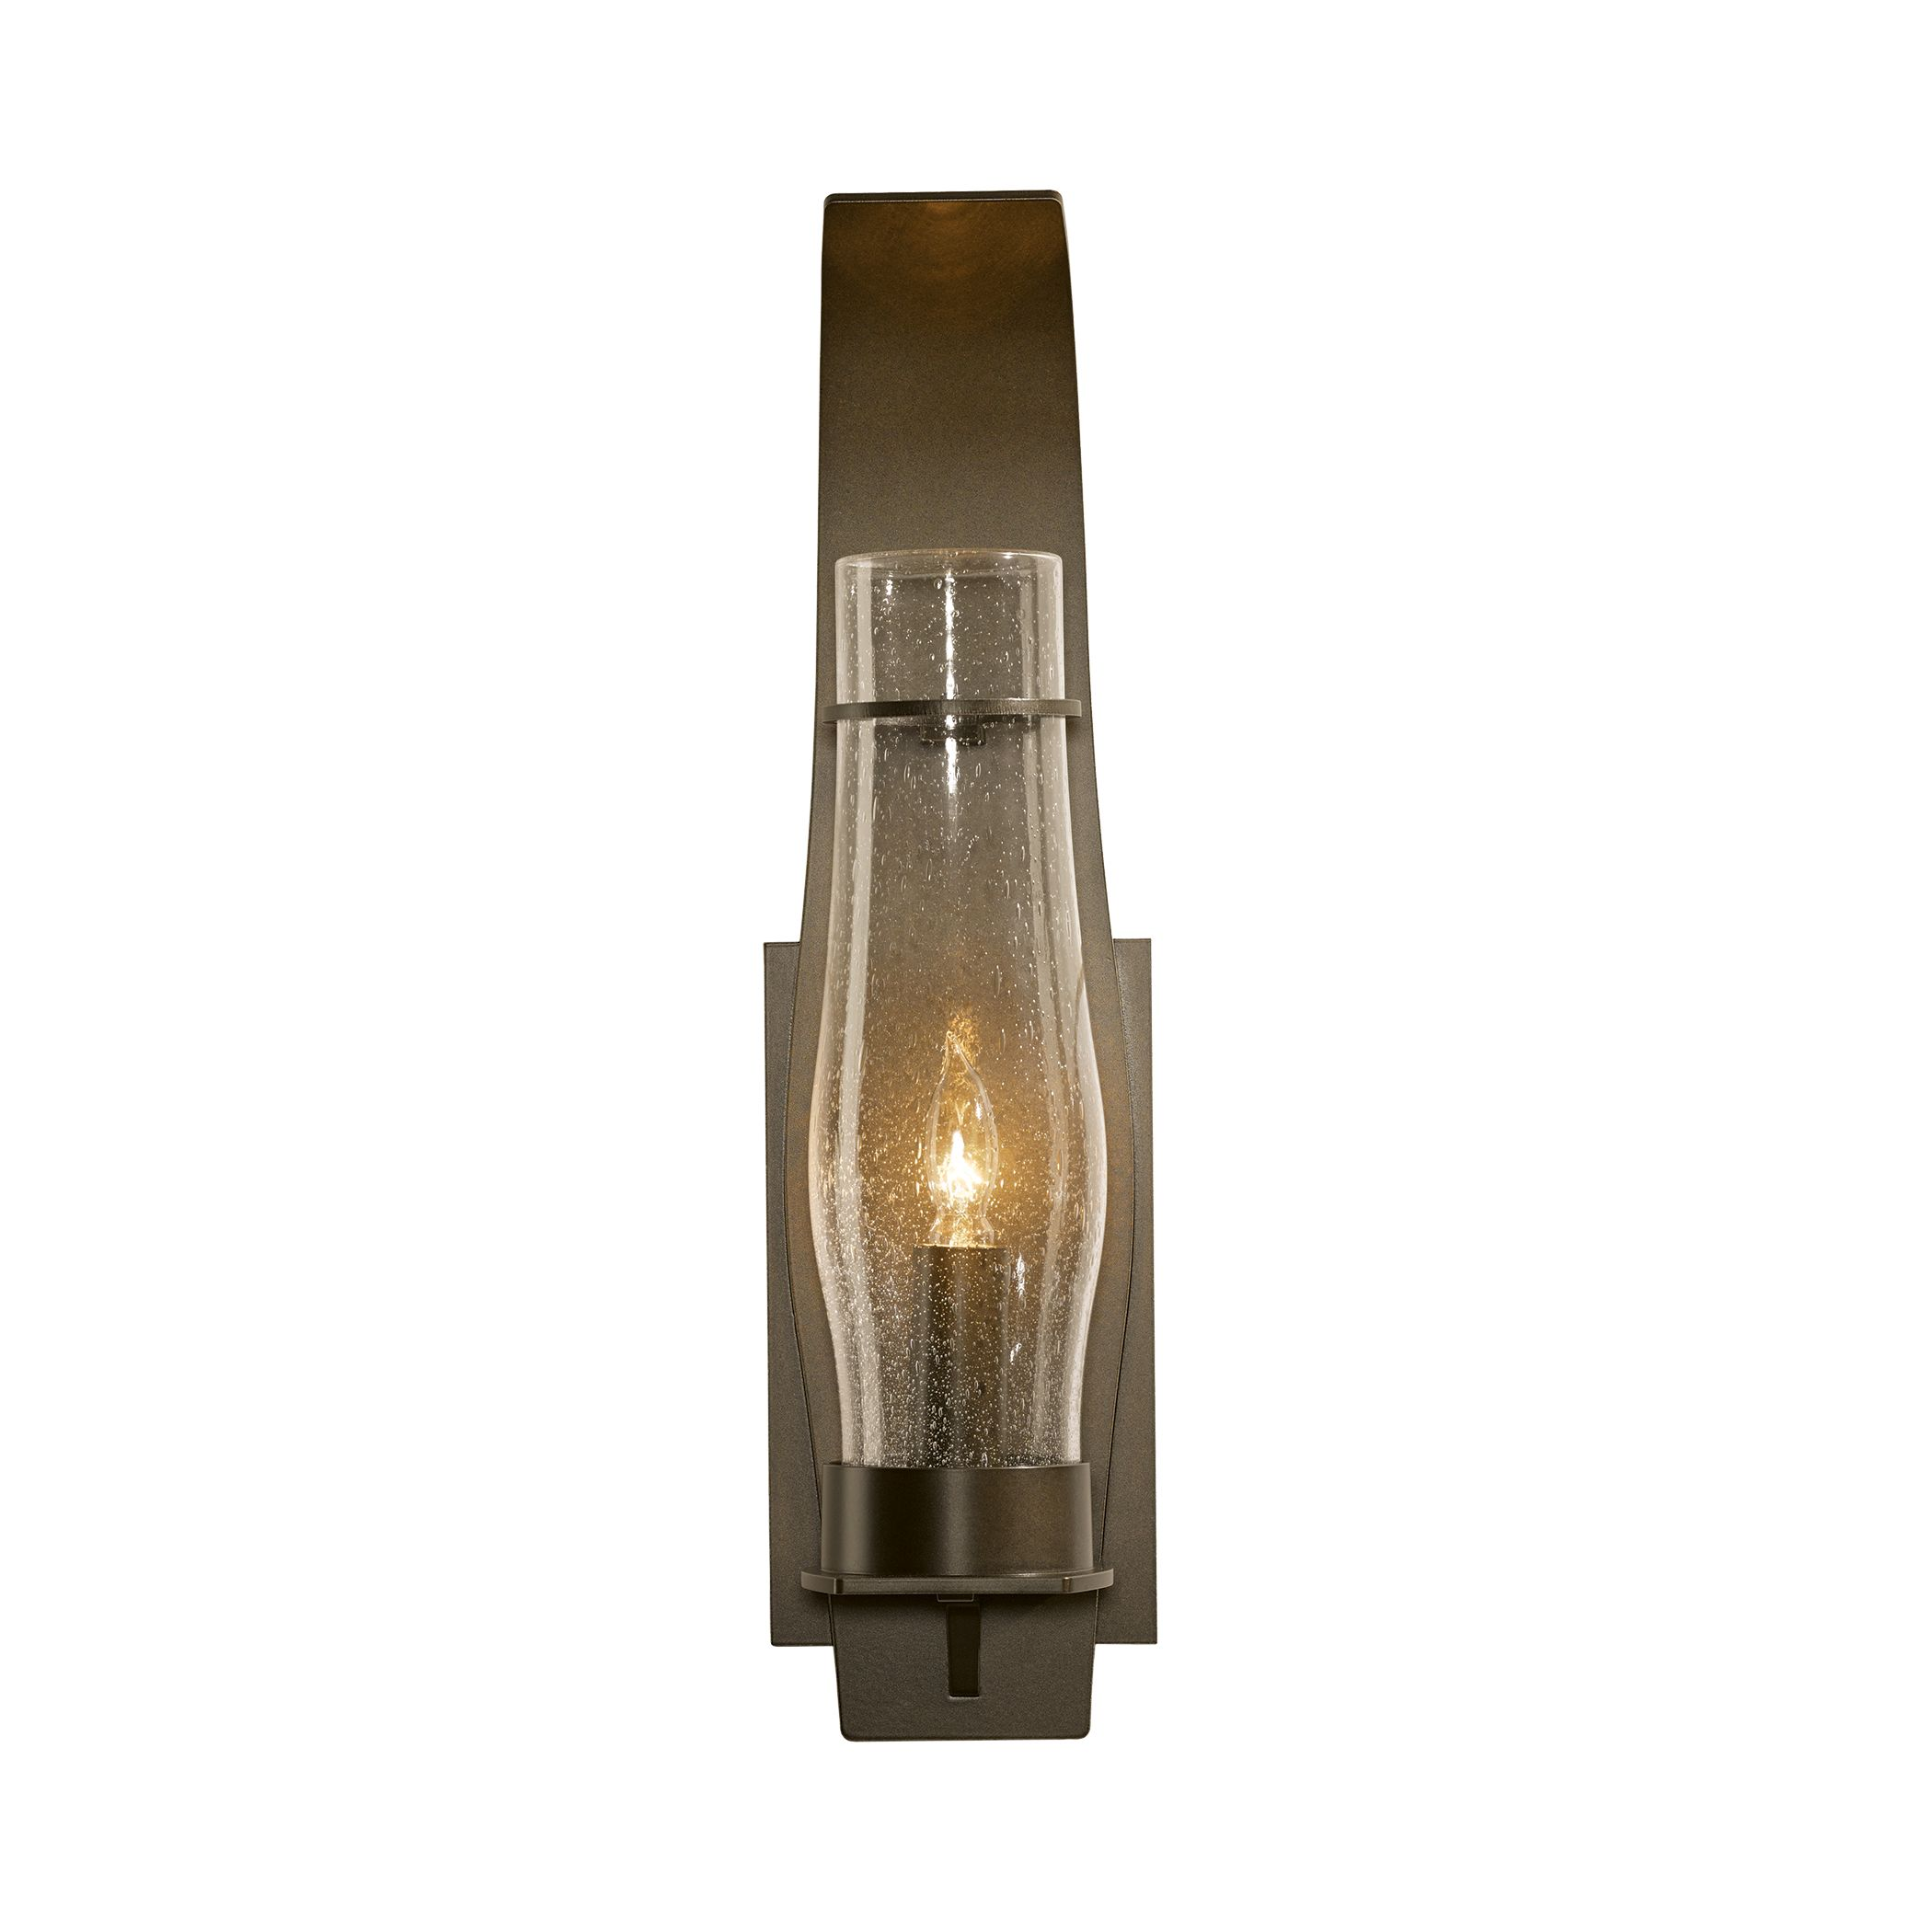 Ccl Coastal Large Seacoast Outdoor Sconce